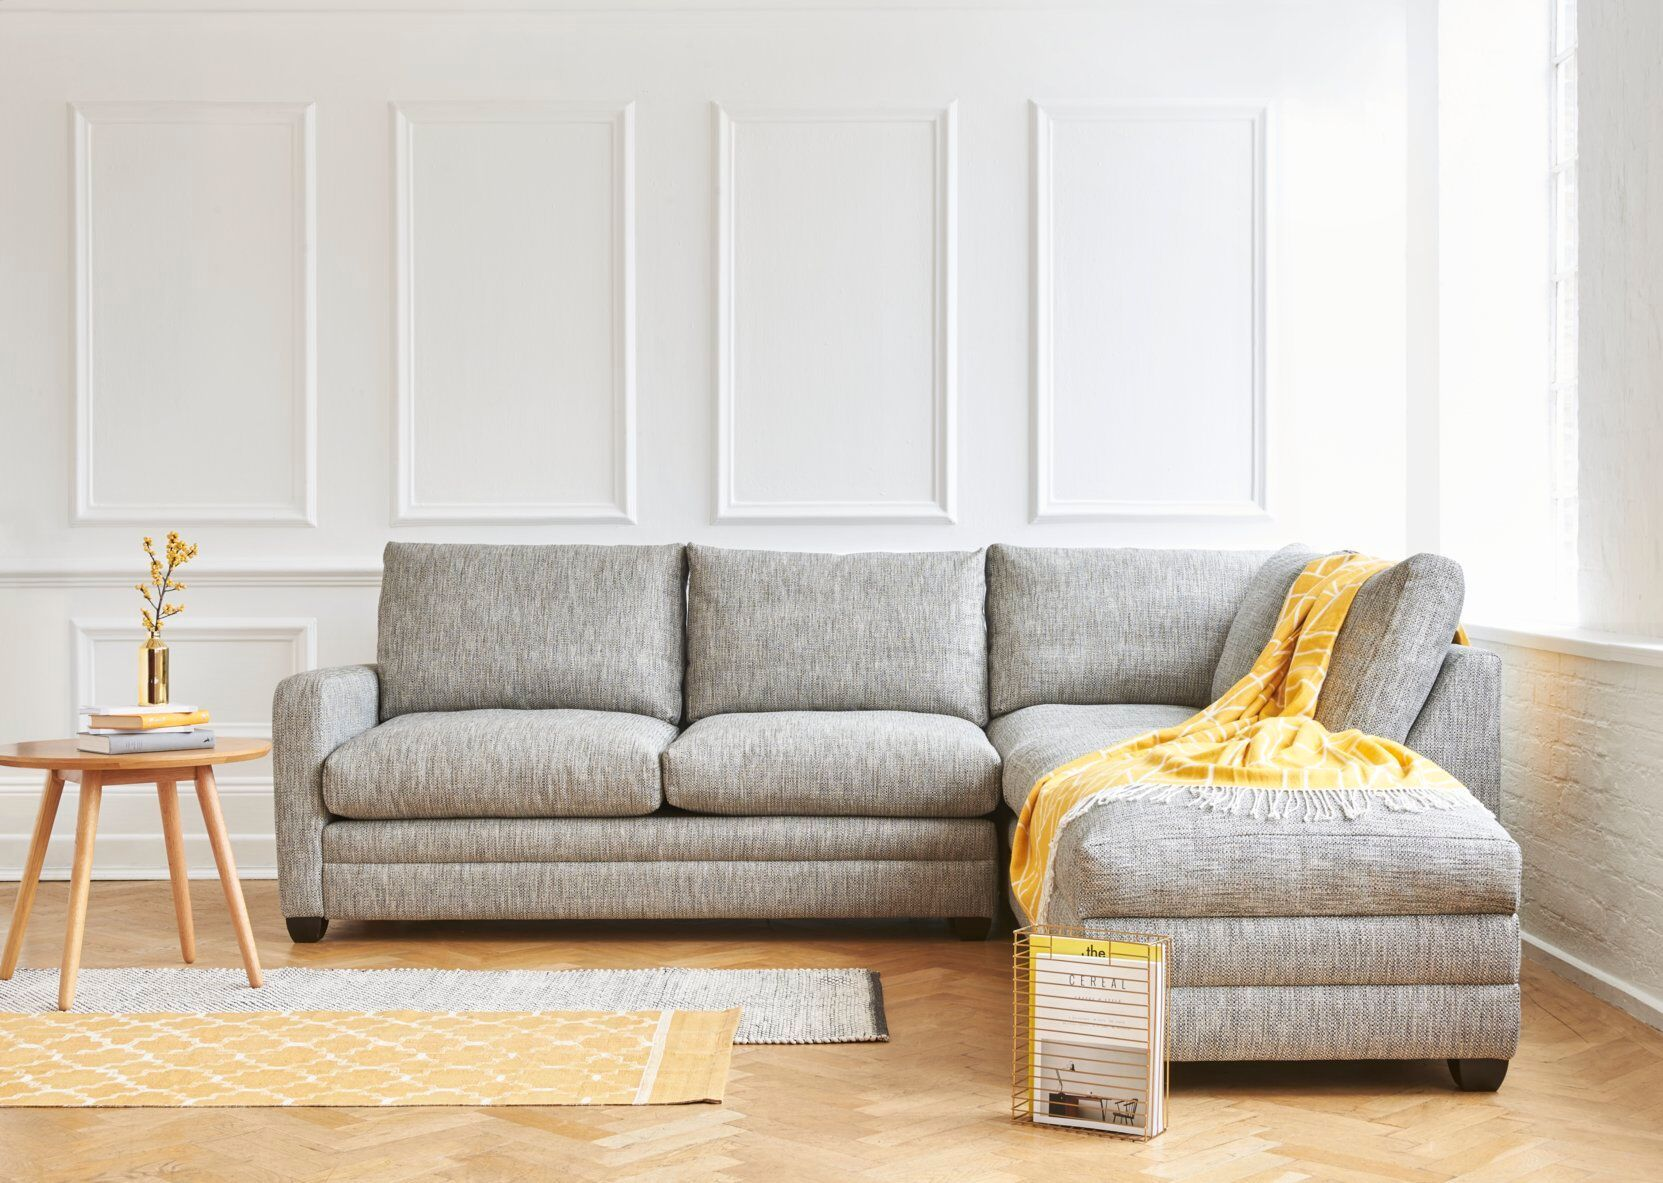 Sofas And Stuff Haresfield Super Stylish And Practical Too The Langdale Corner Sofa Bed Is